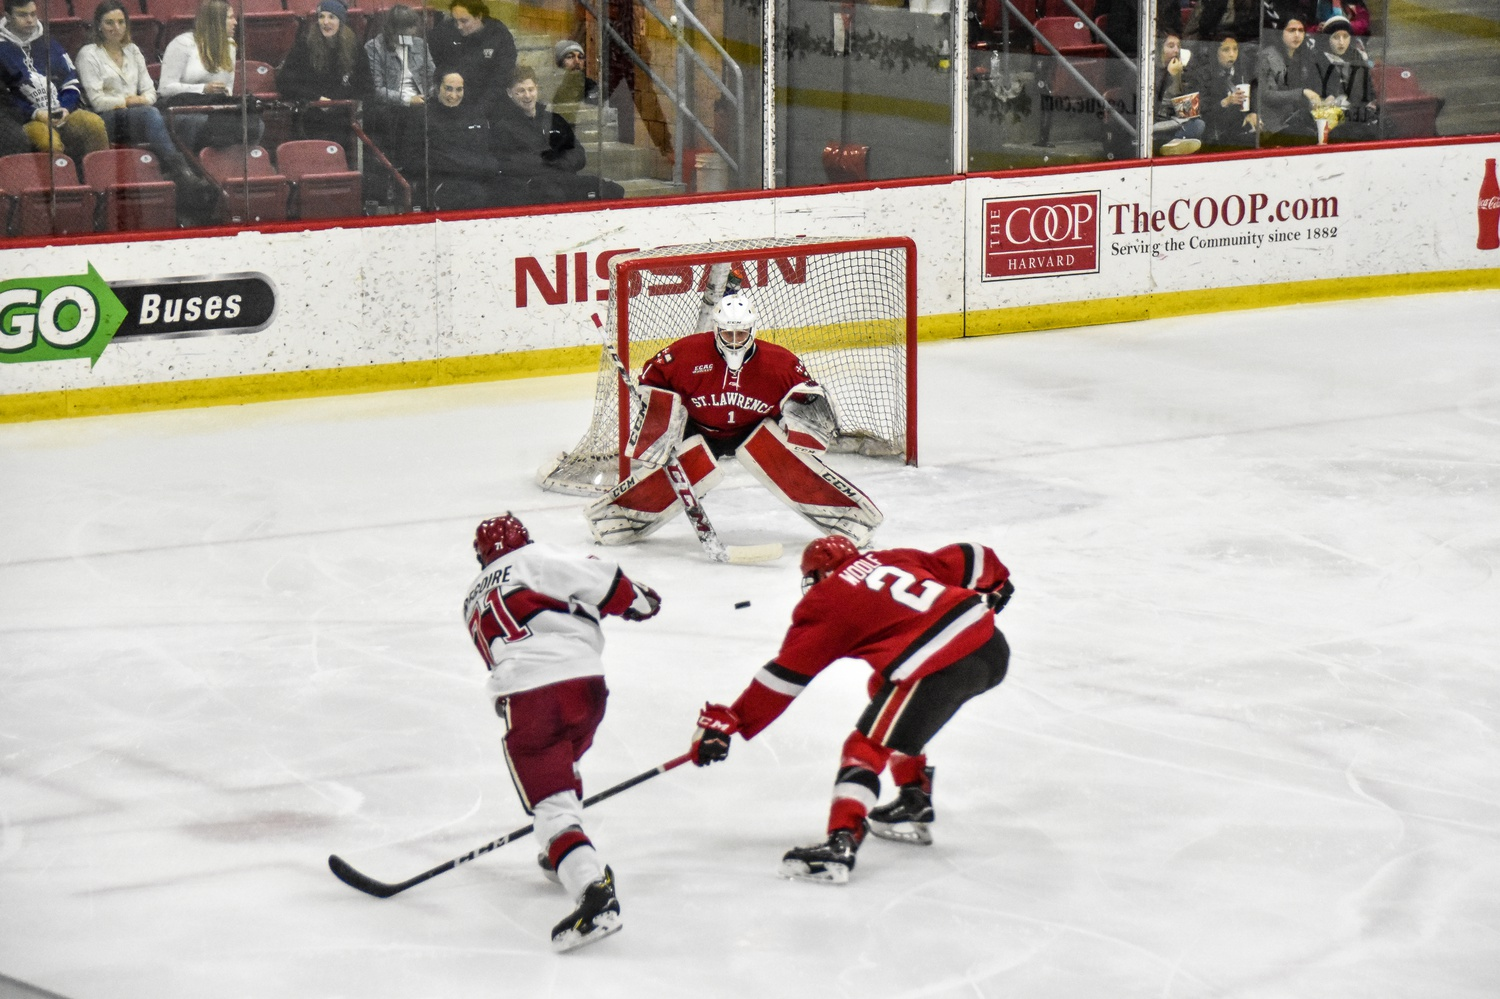 Saints rookie goalie Emil Zetterquist has probably seen more of the Crimson than he'd like this season. In nearly two hours of play, Zetterquist has faced down 69 Harvard shots and conceded 7 goals.